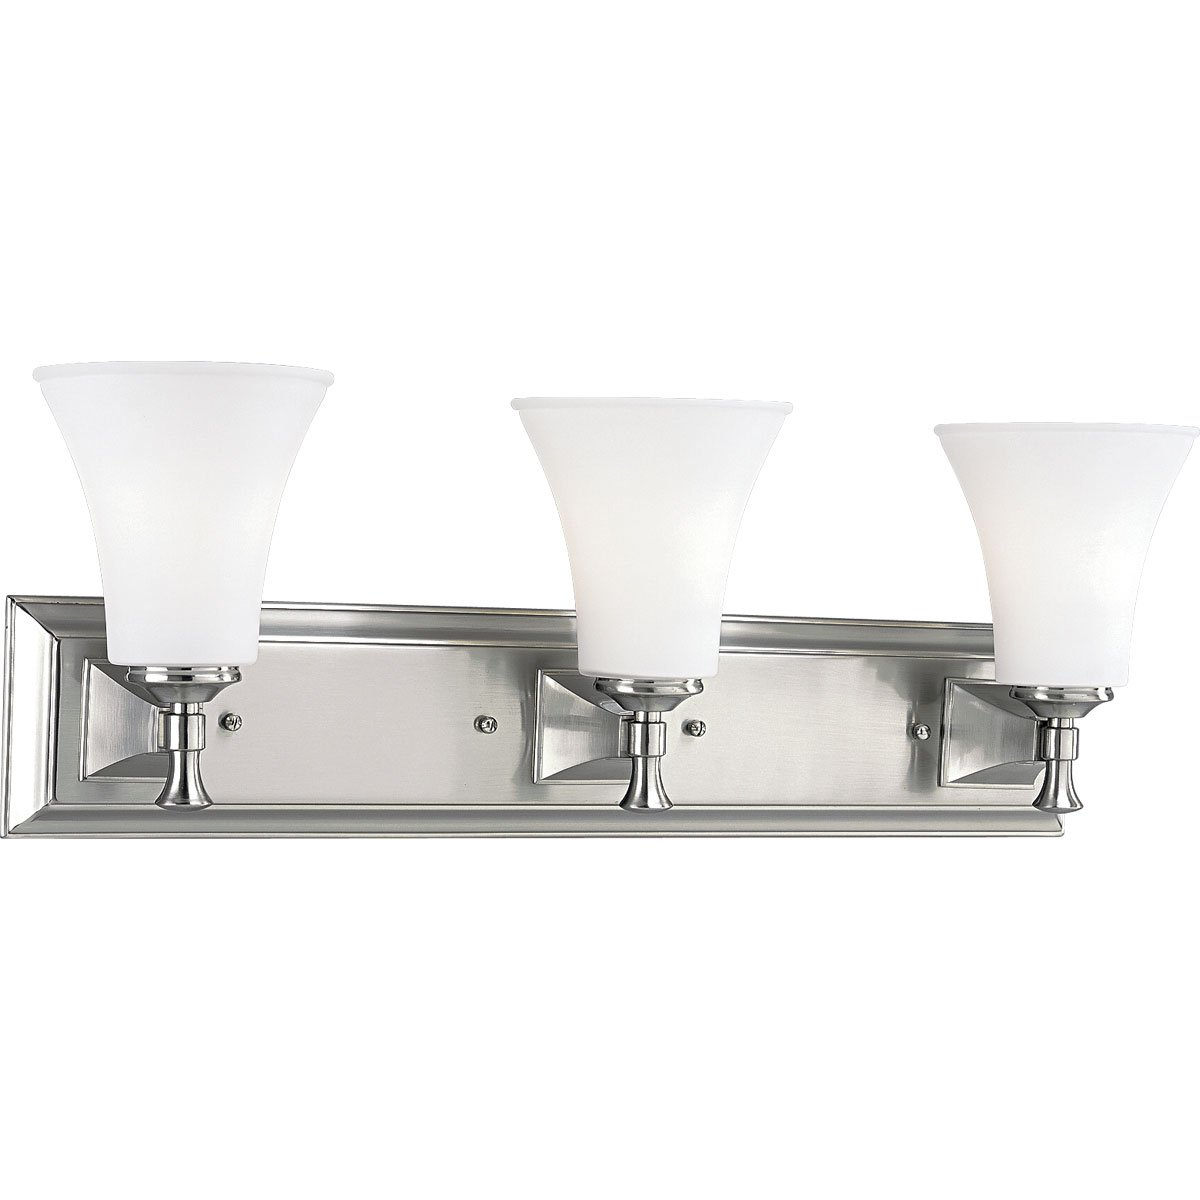 Progress Lighting P3133-09 3-Light Bath Fixture, Brushed Nickel